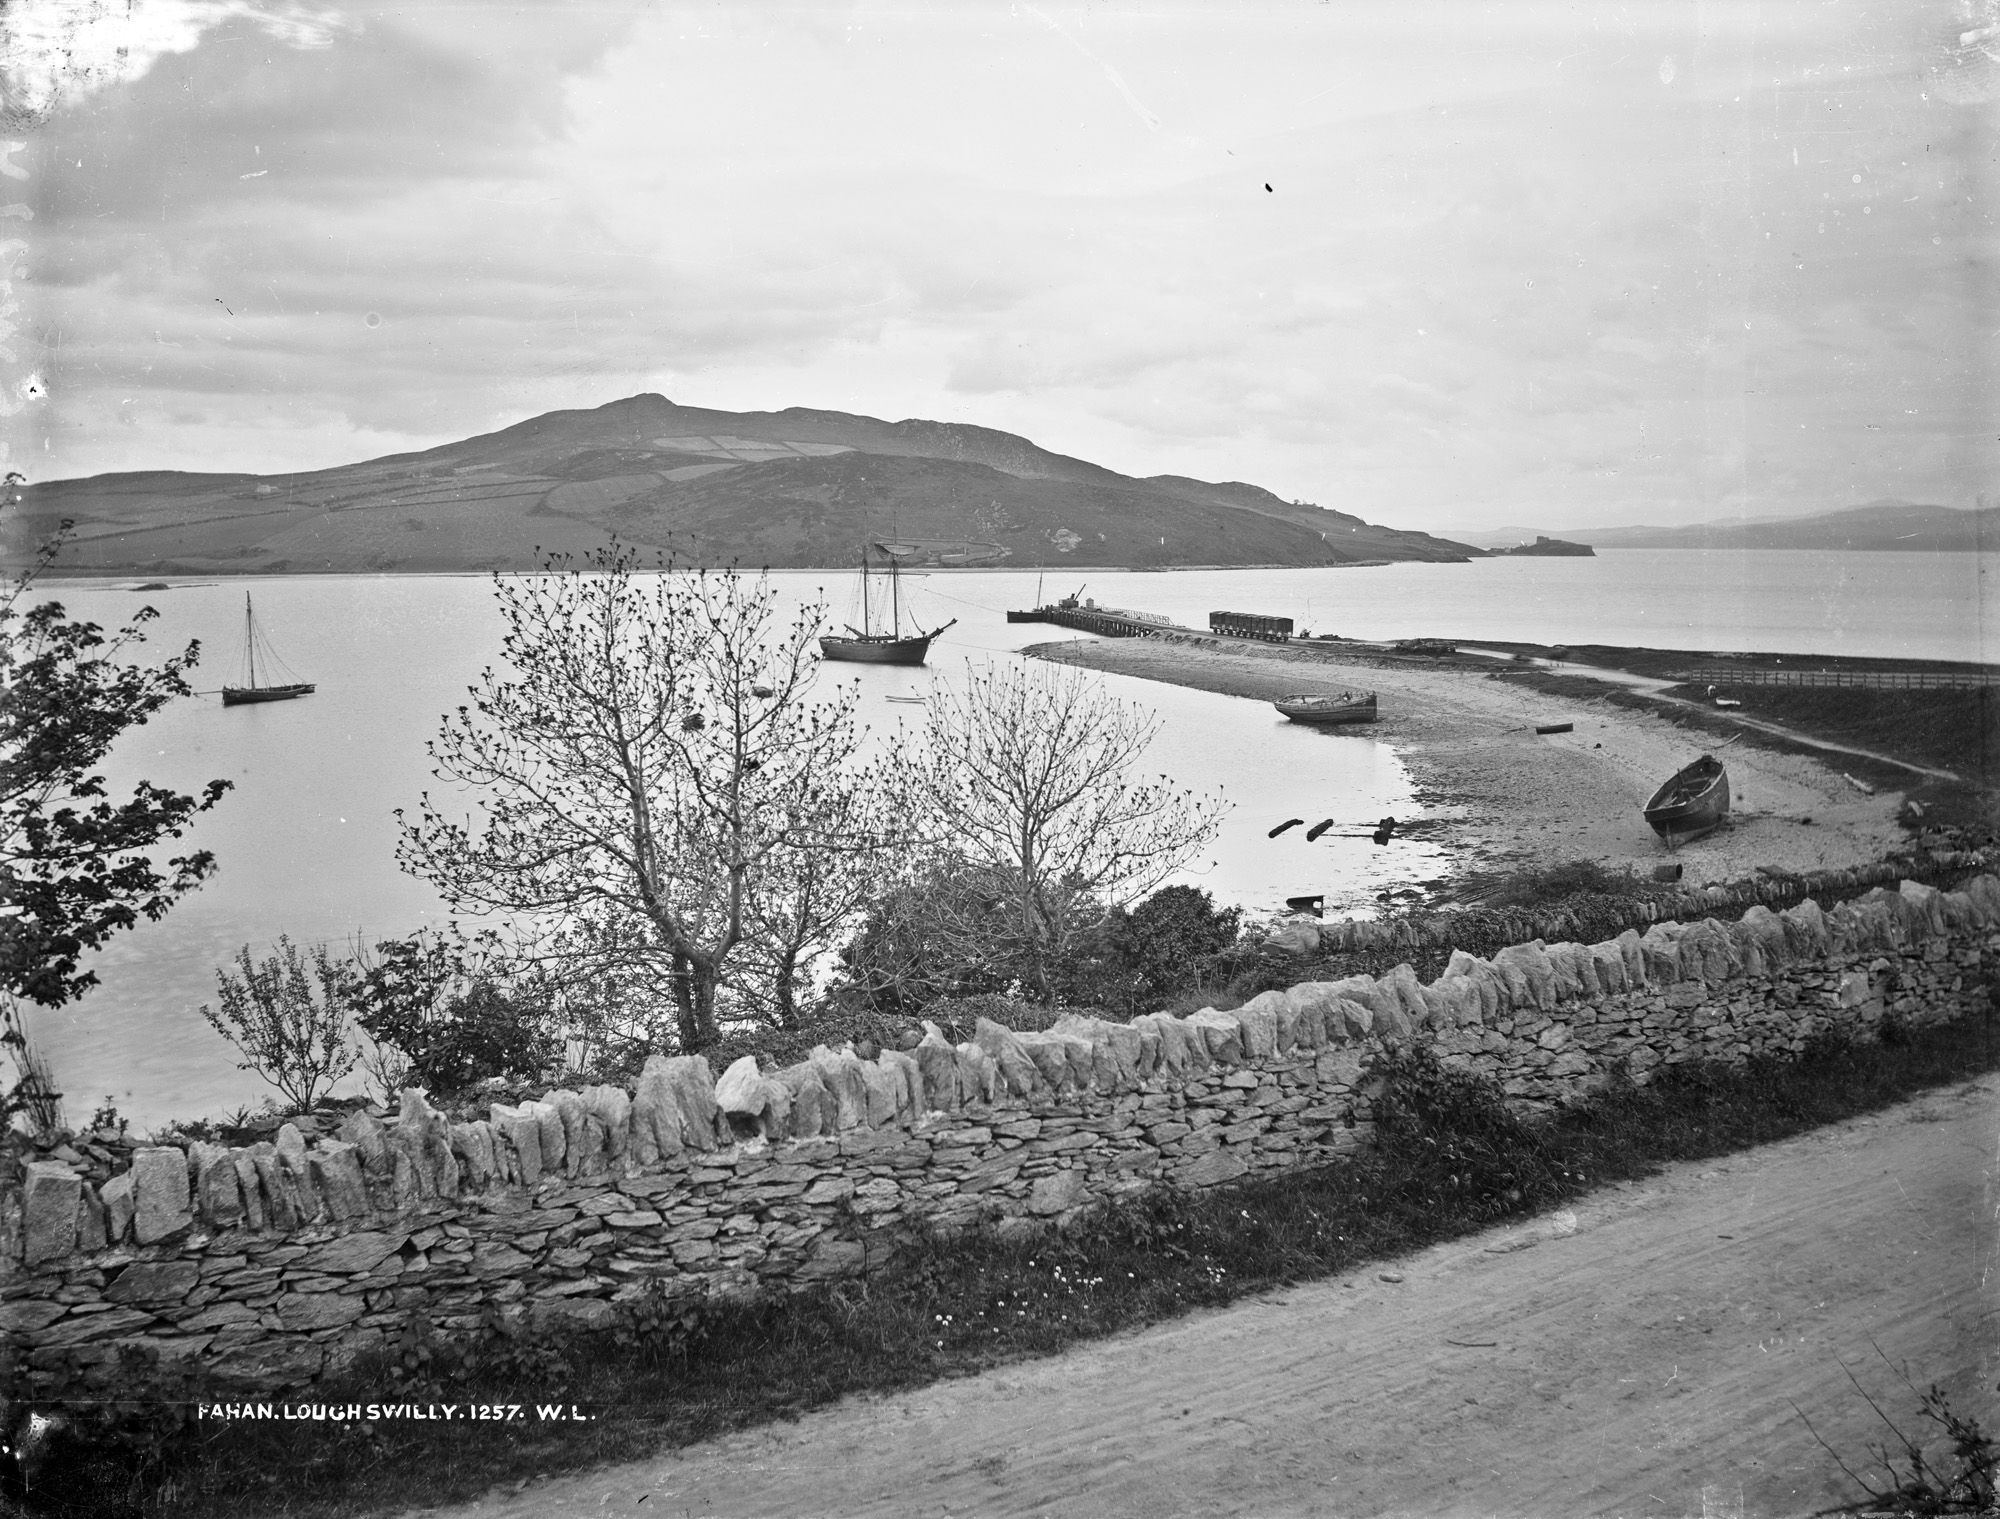 Fahan in Lough Swilly.